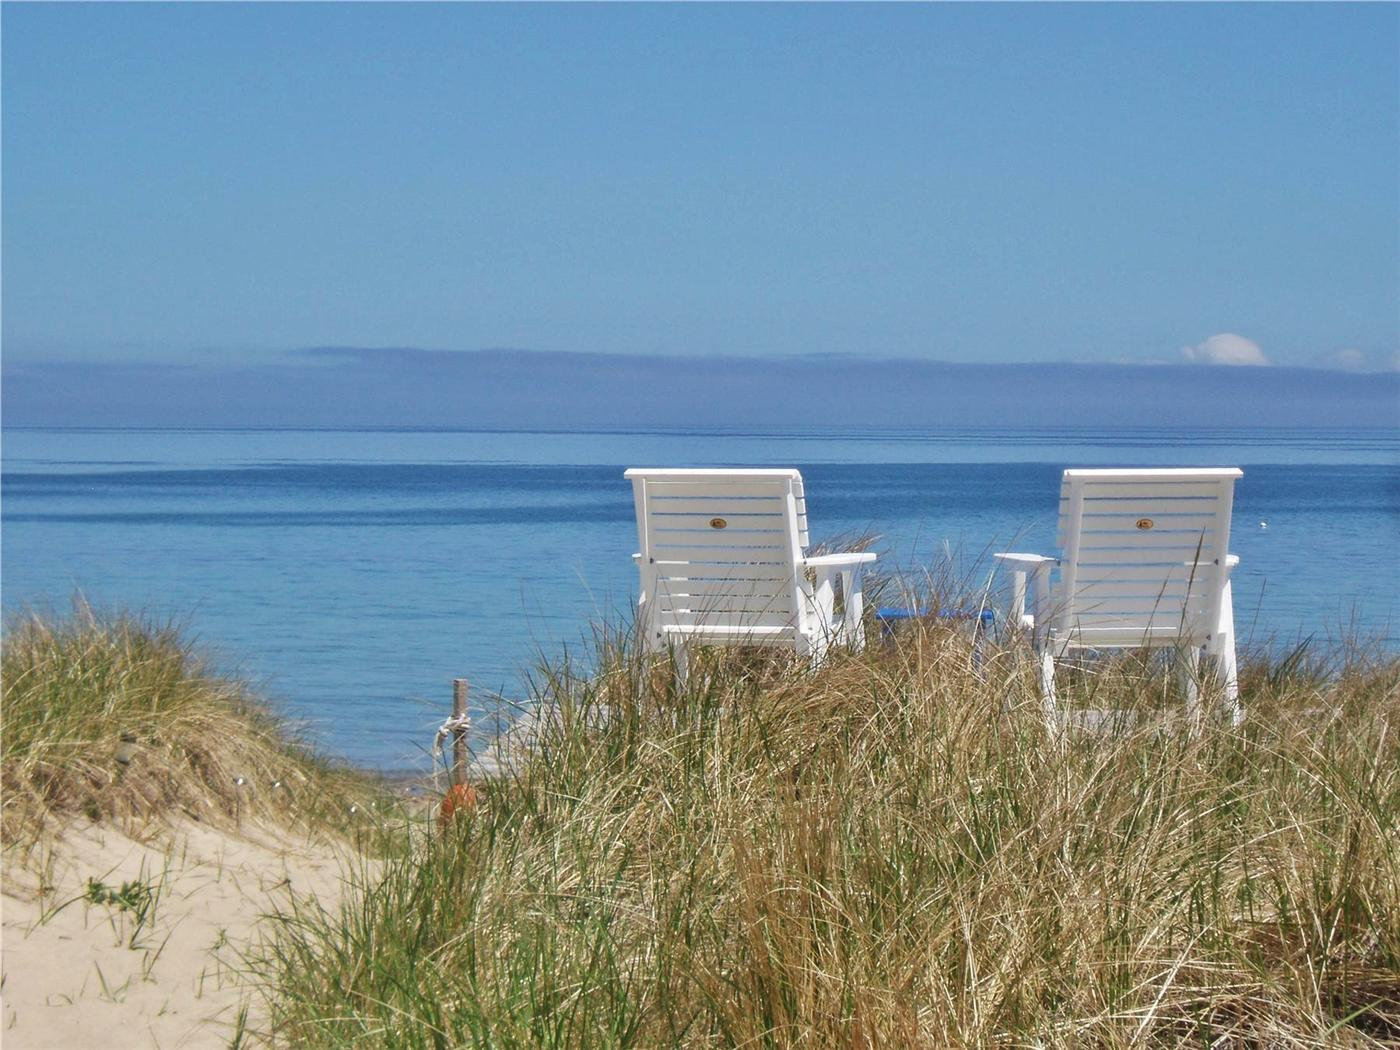 Cape Cod Beach Chair Sagamore Beach Vacation Rental Home In Sagamore Beach Ma